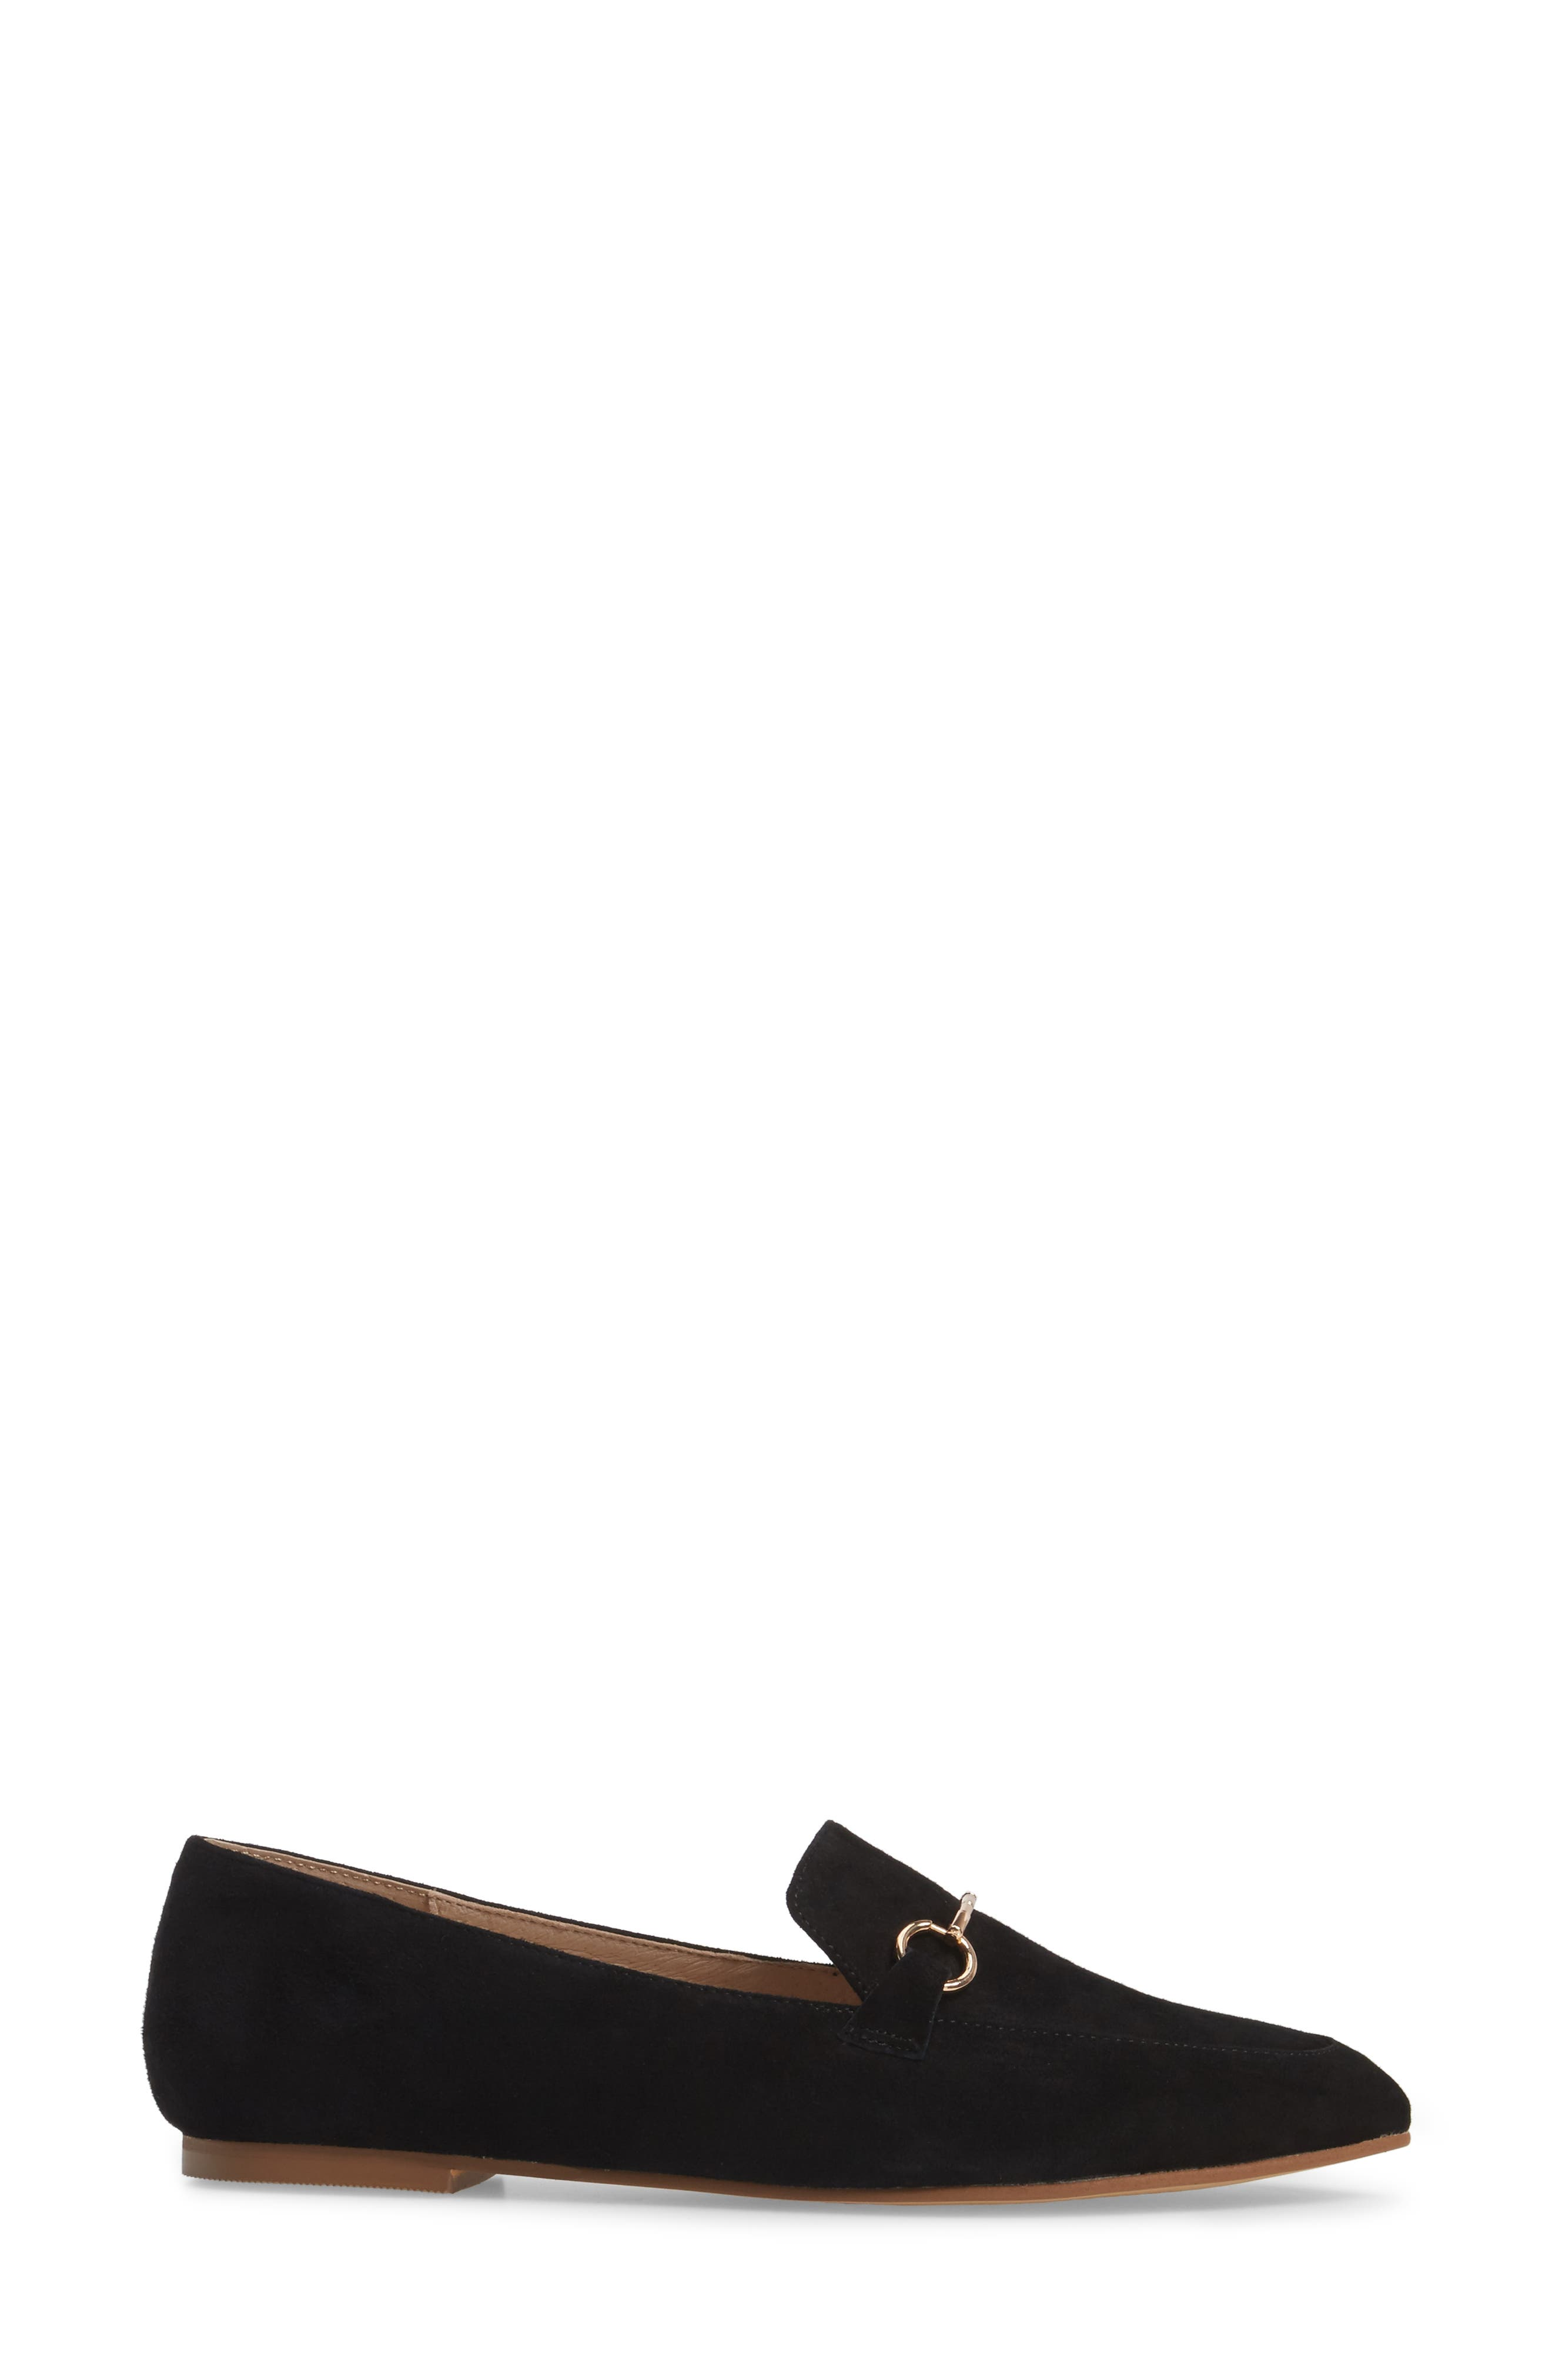 Cambrie Loafer Flat,                             Alternate thumbnail 3, color,                             001